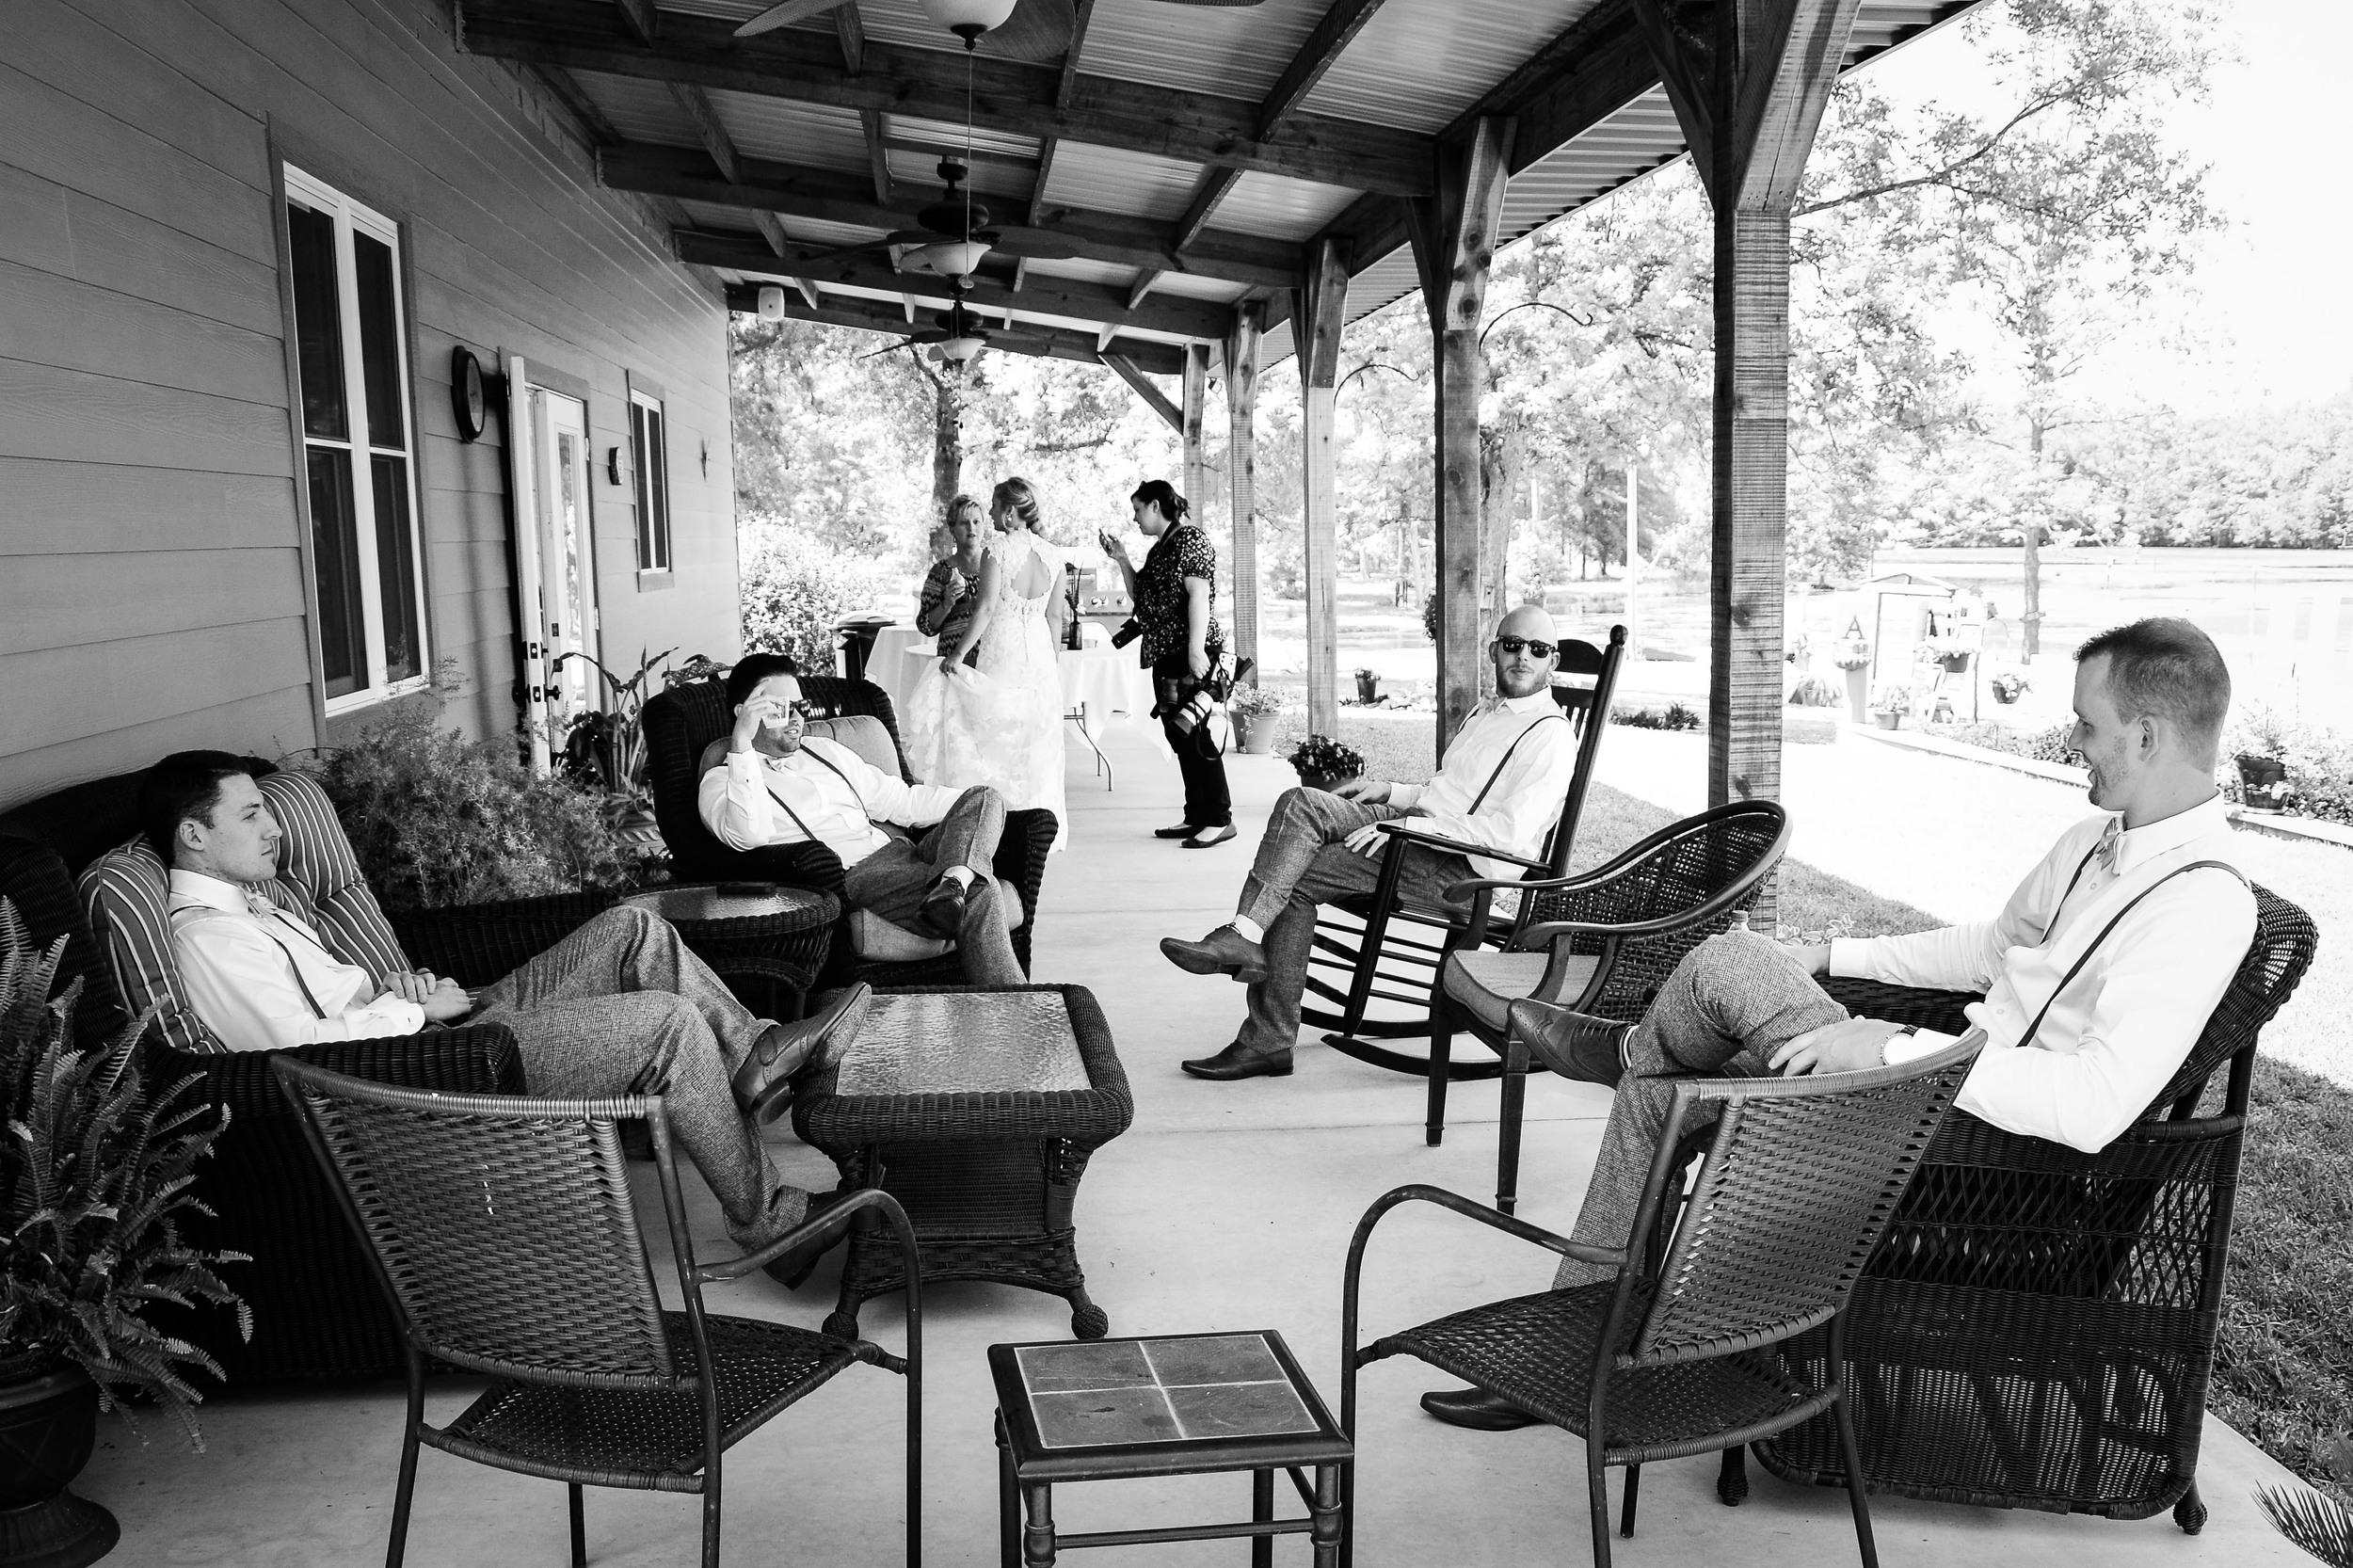 The groomsmen taking some shelter from the sweltering sunand hanging out in the shade.